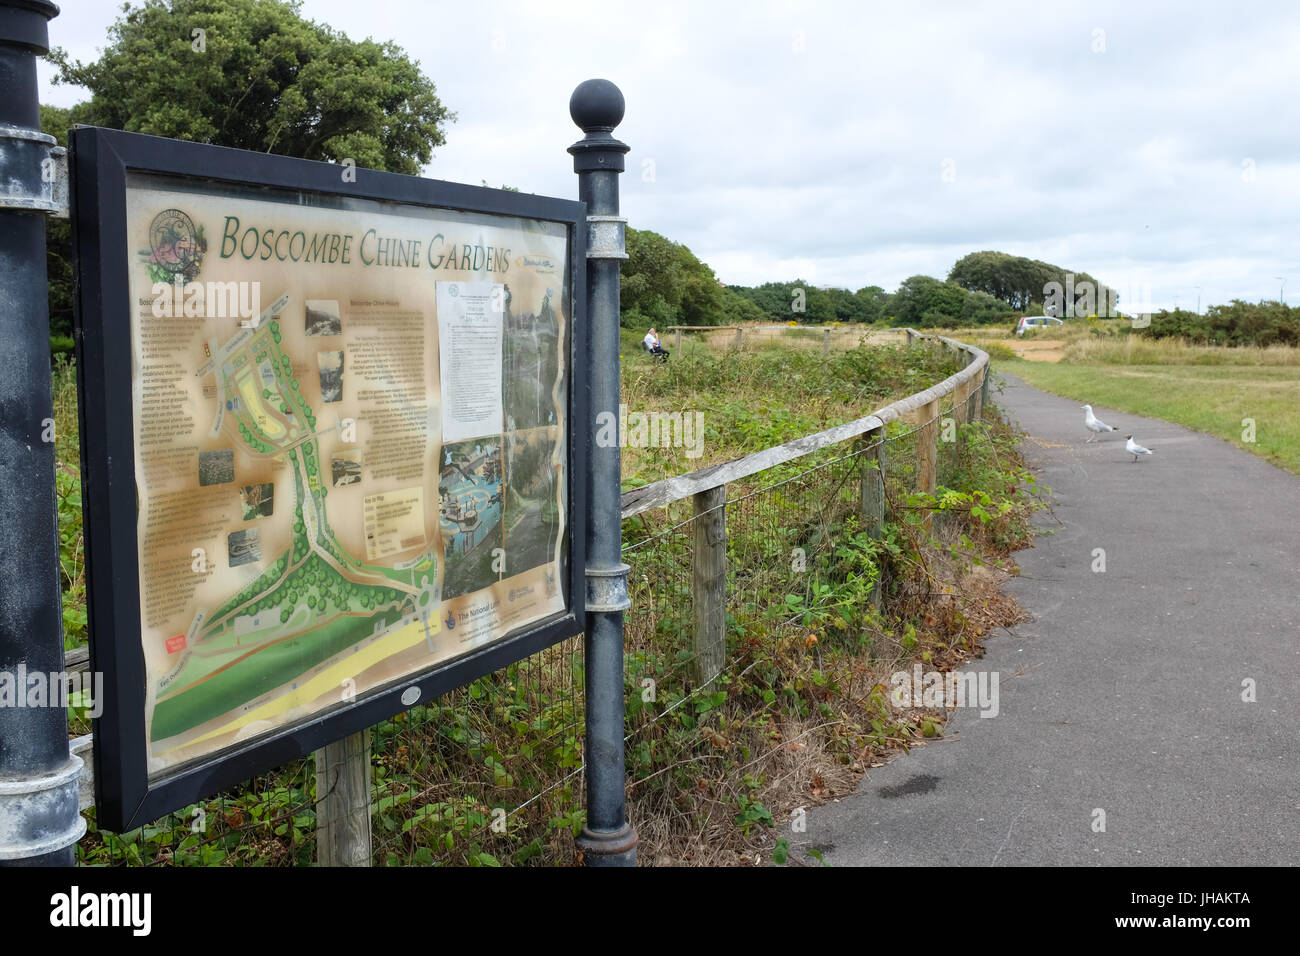 The entrance to Boscombe Chine Gardens in Boscombe, near Bournemouth in England. - Stock Image